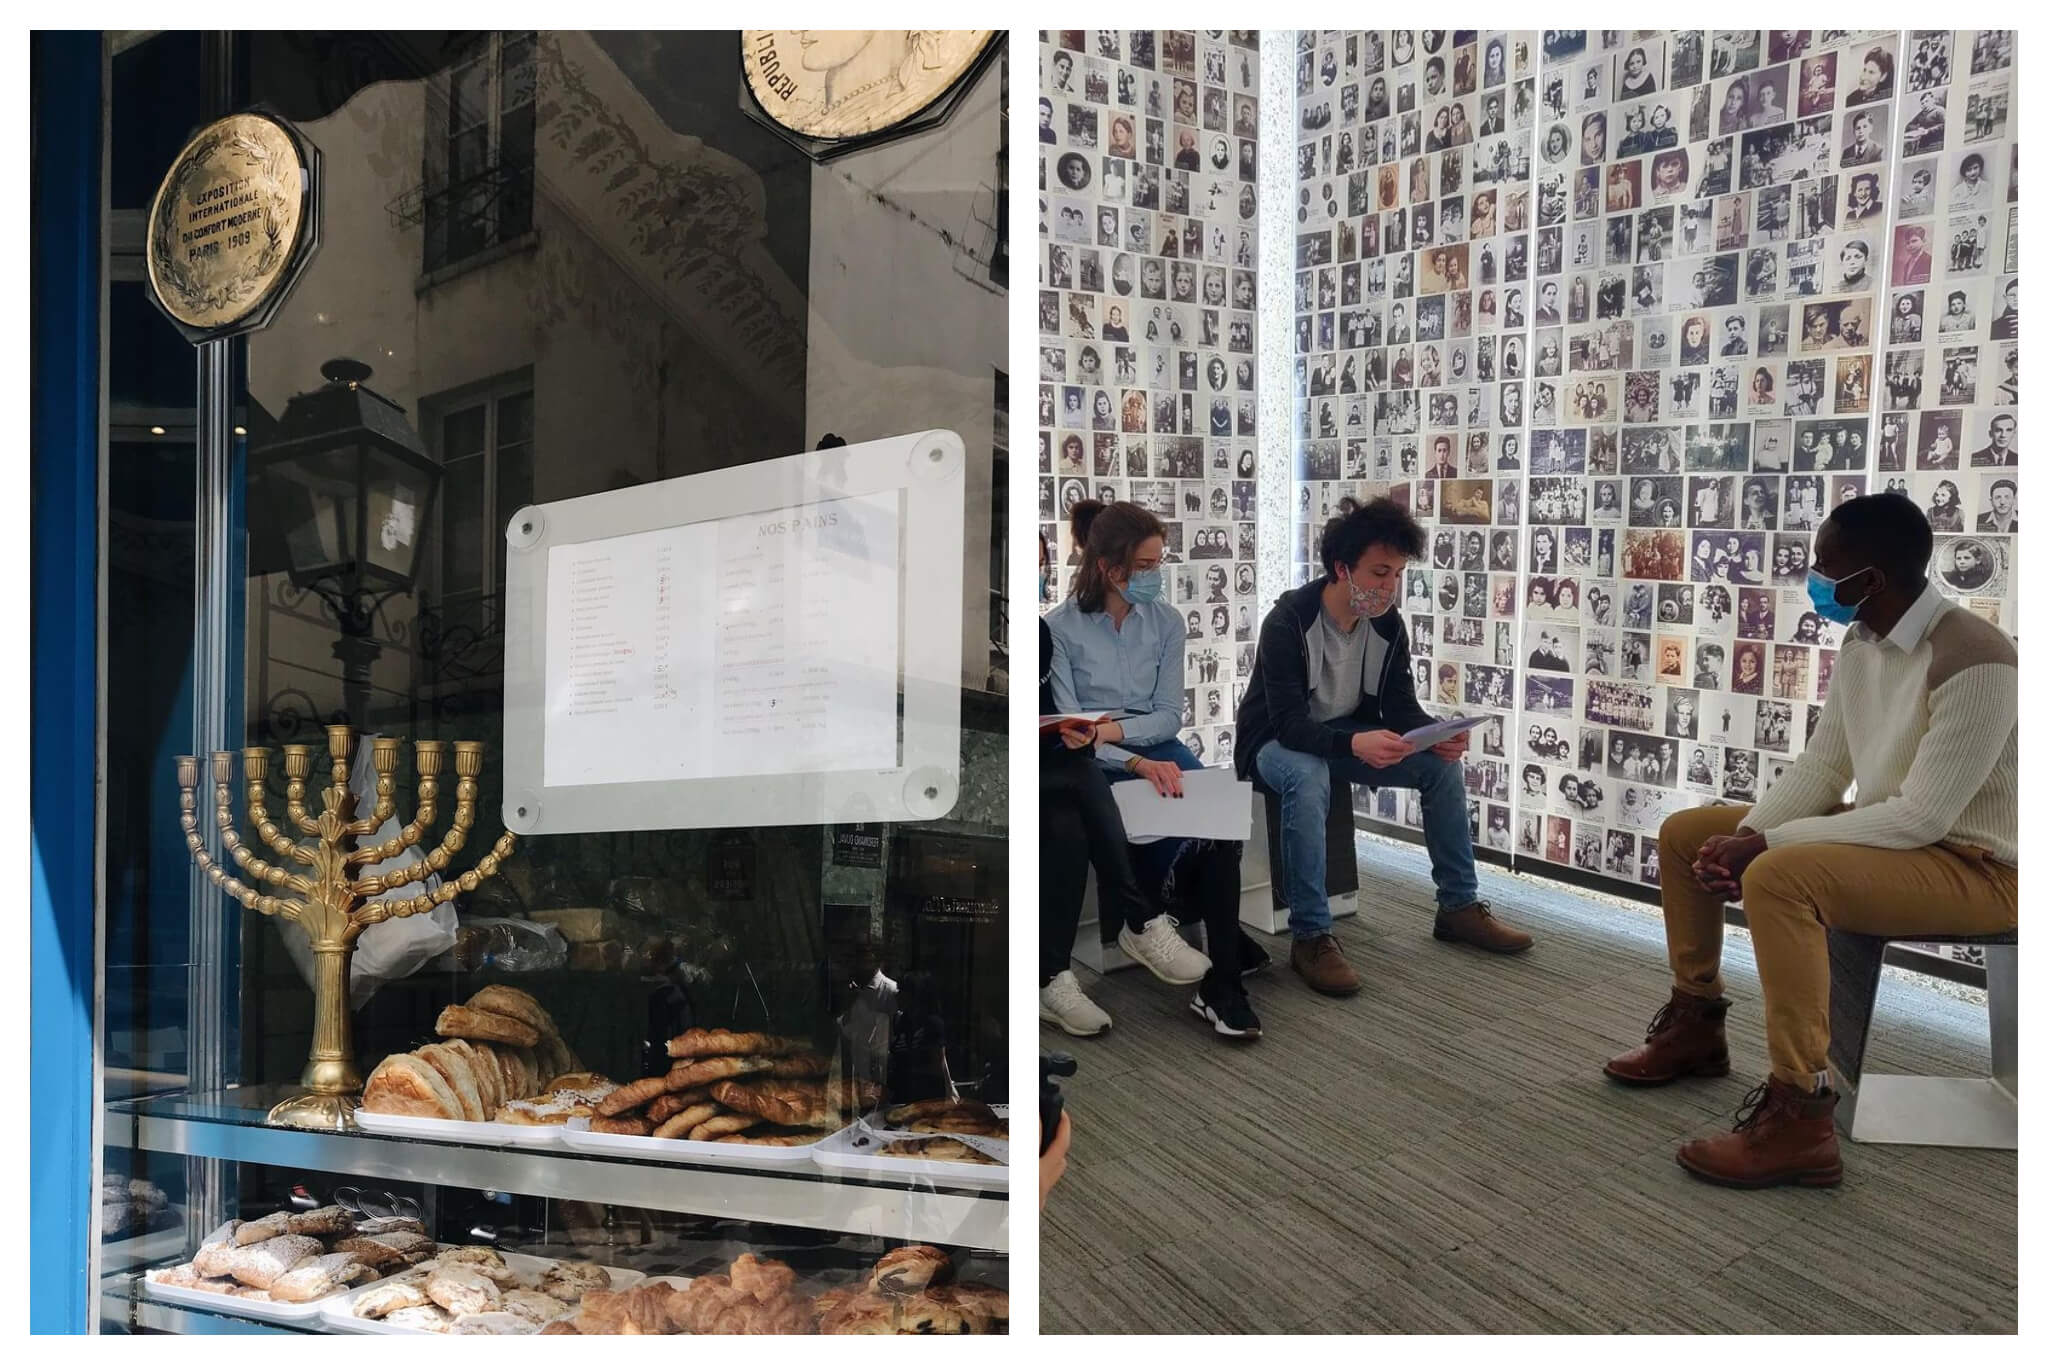 Left: The window of Boulangerie Murciano in Paris. Right: A tour group inside of Memorial Shoah.